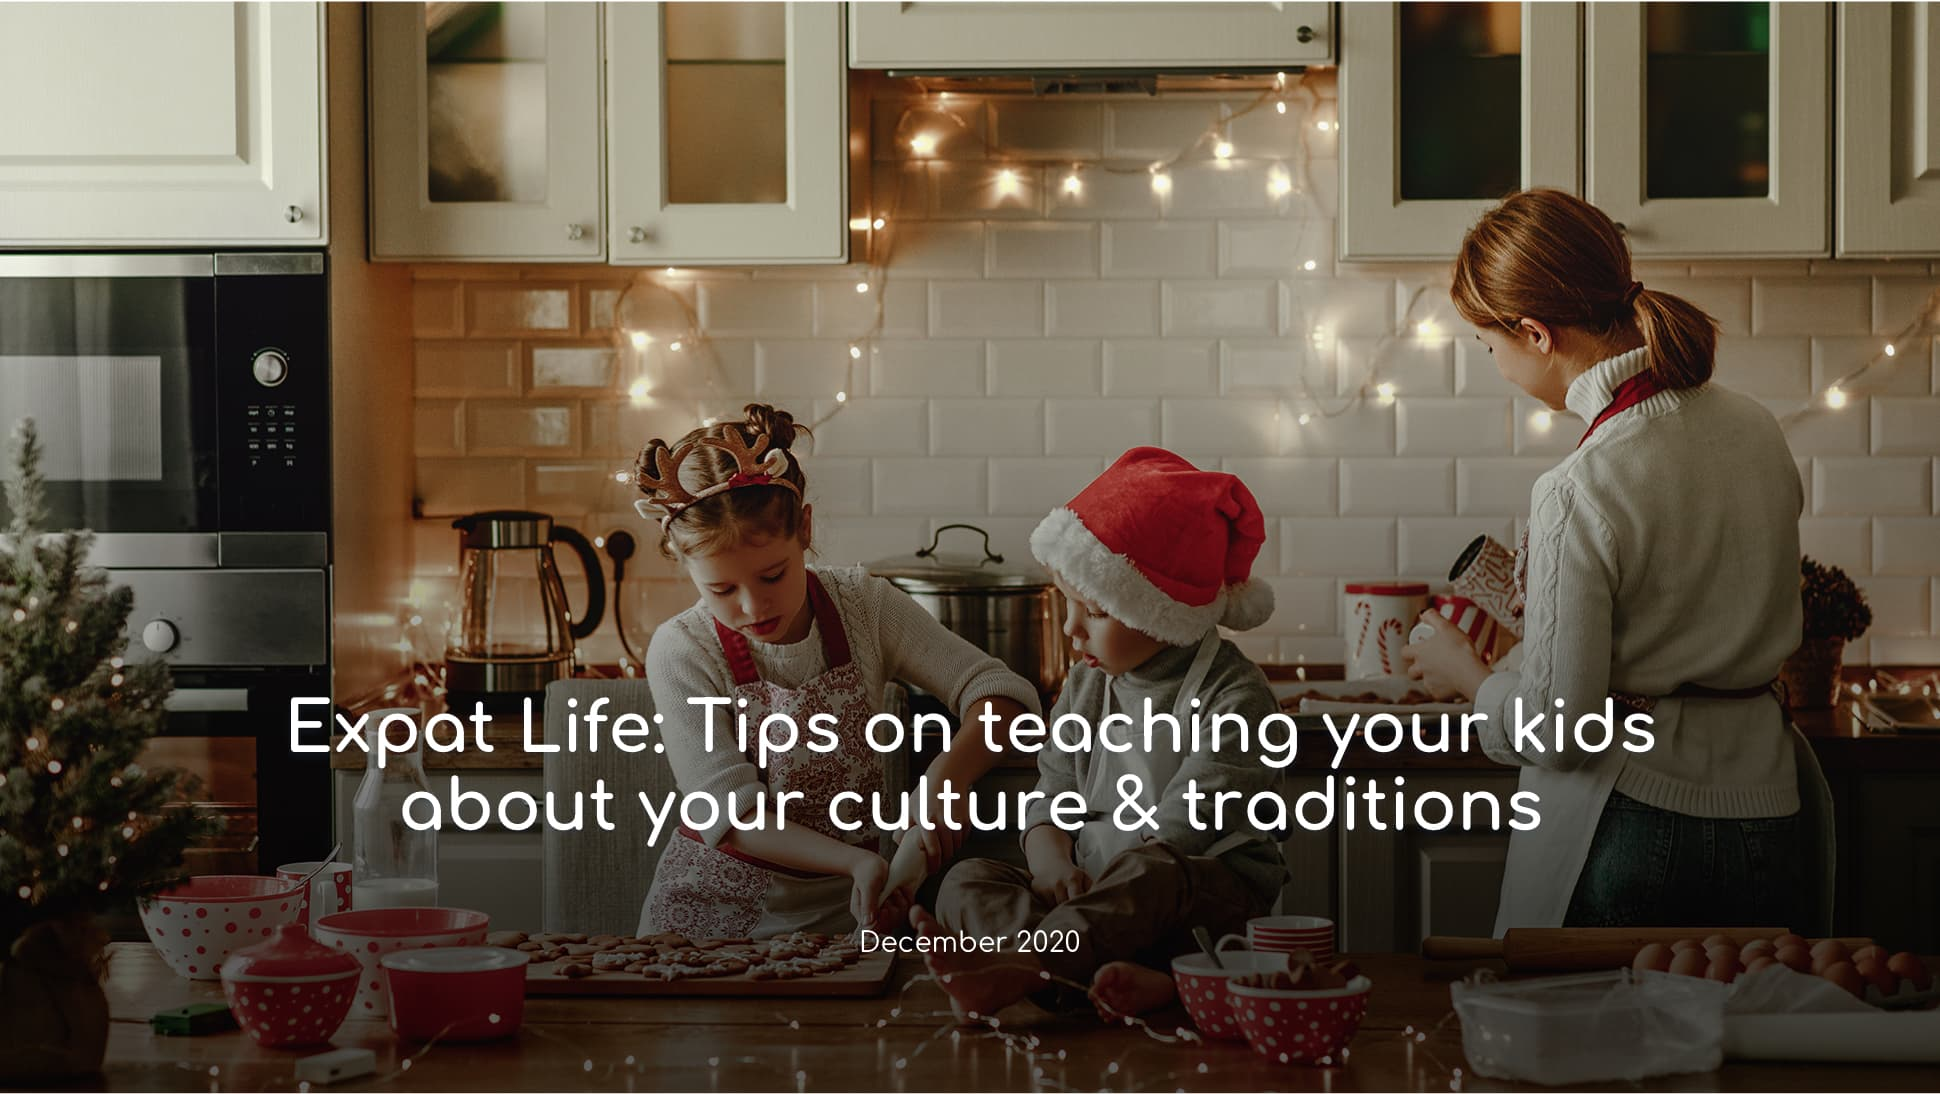 Expat Life: Tips on teaching your kids about your culture & traditions